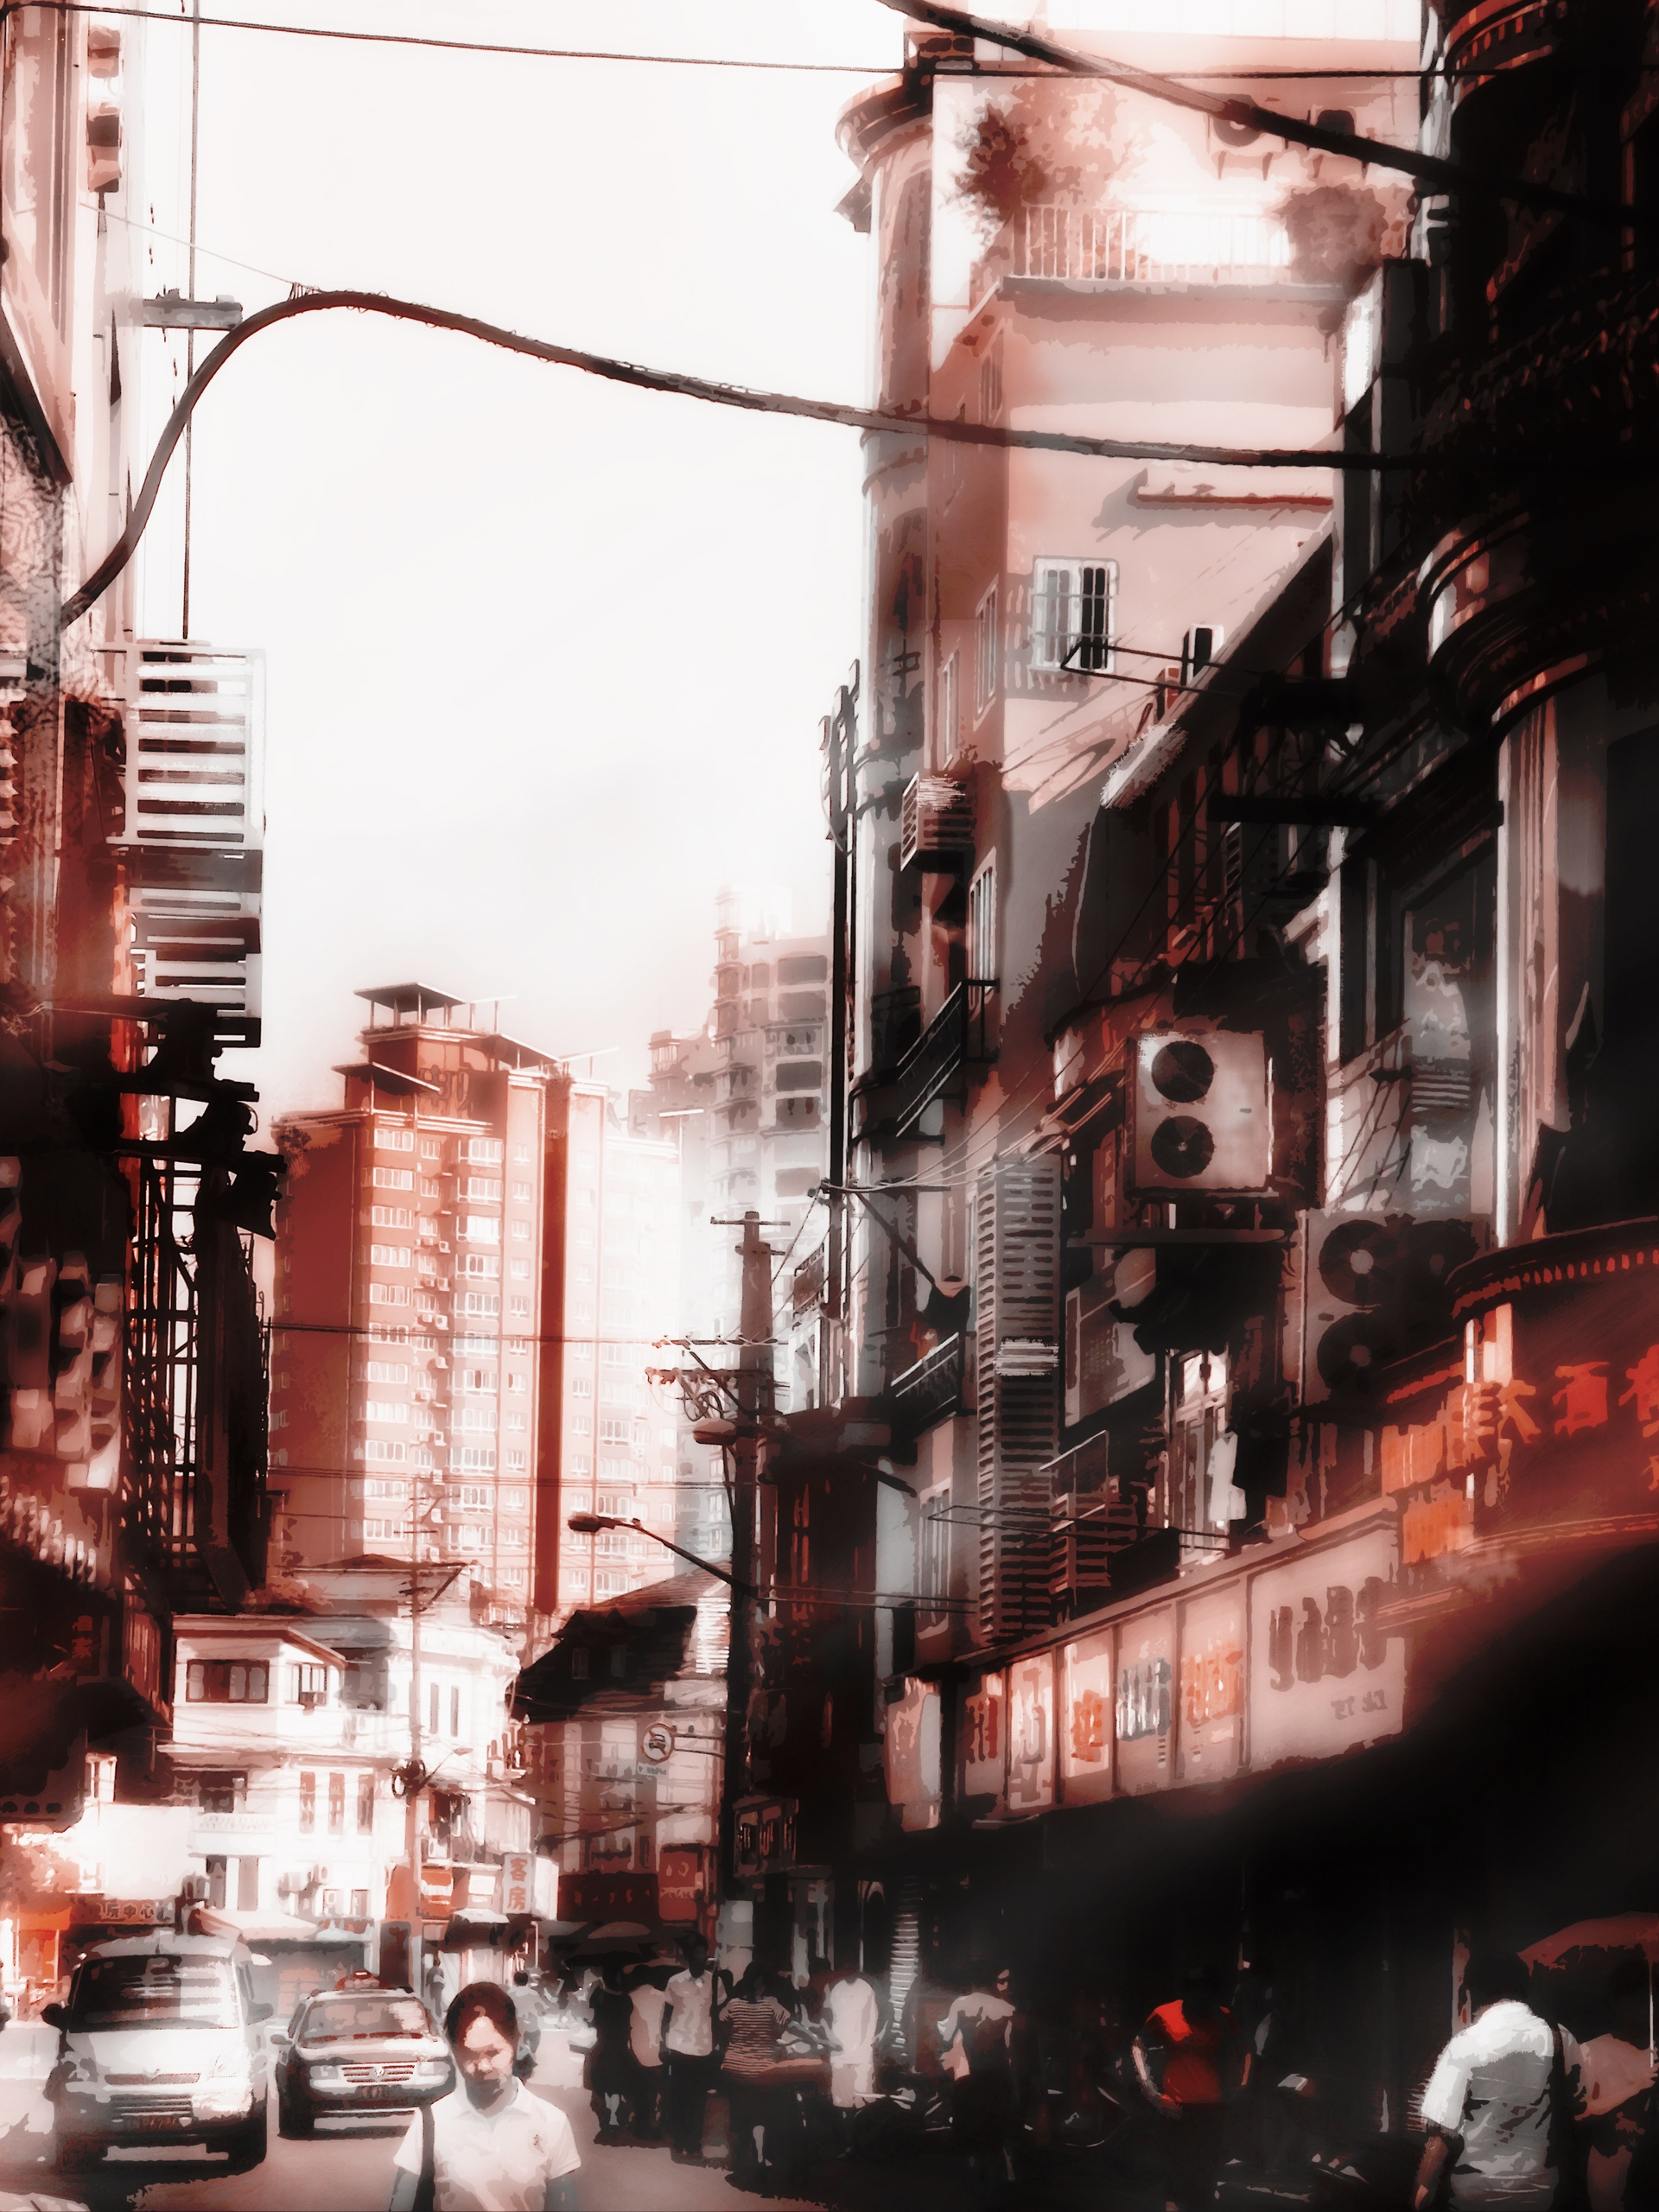 Shanghai Streets 3 - shanghai, illustration#digitalart#design#characterdesign#photoshop#painting#davisvrworks#drawing#conceptart - mash-1263 | ello